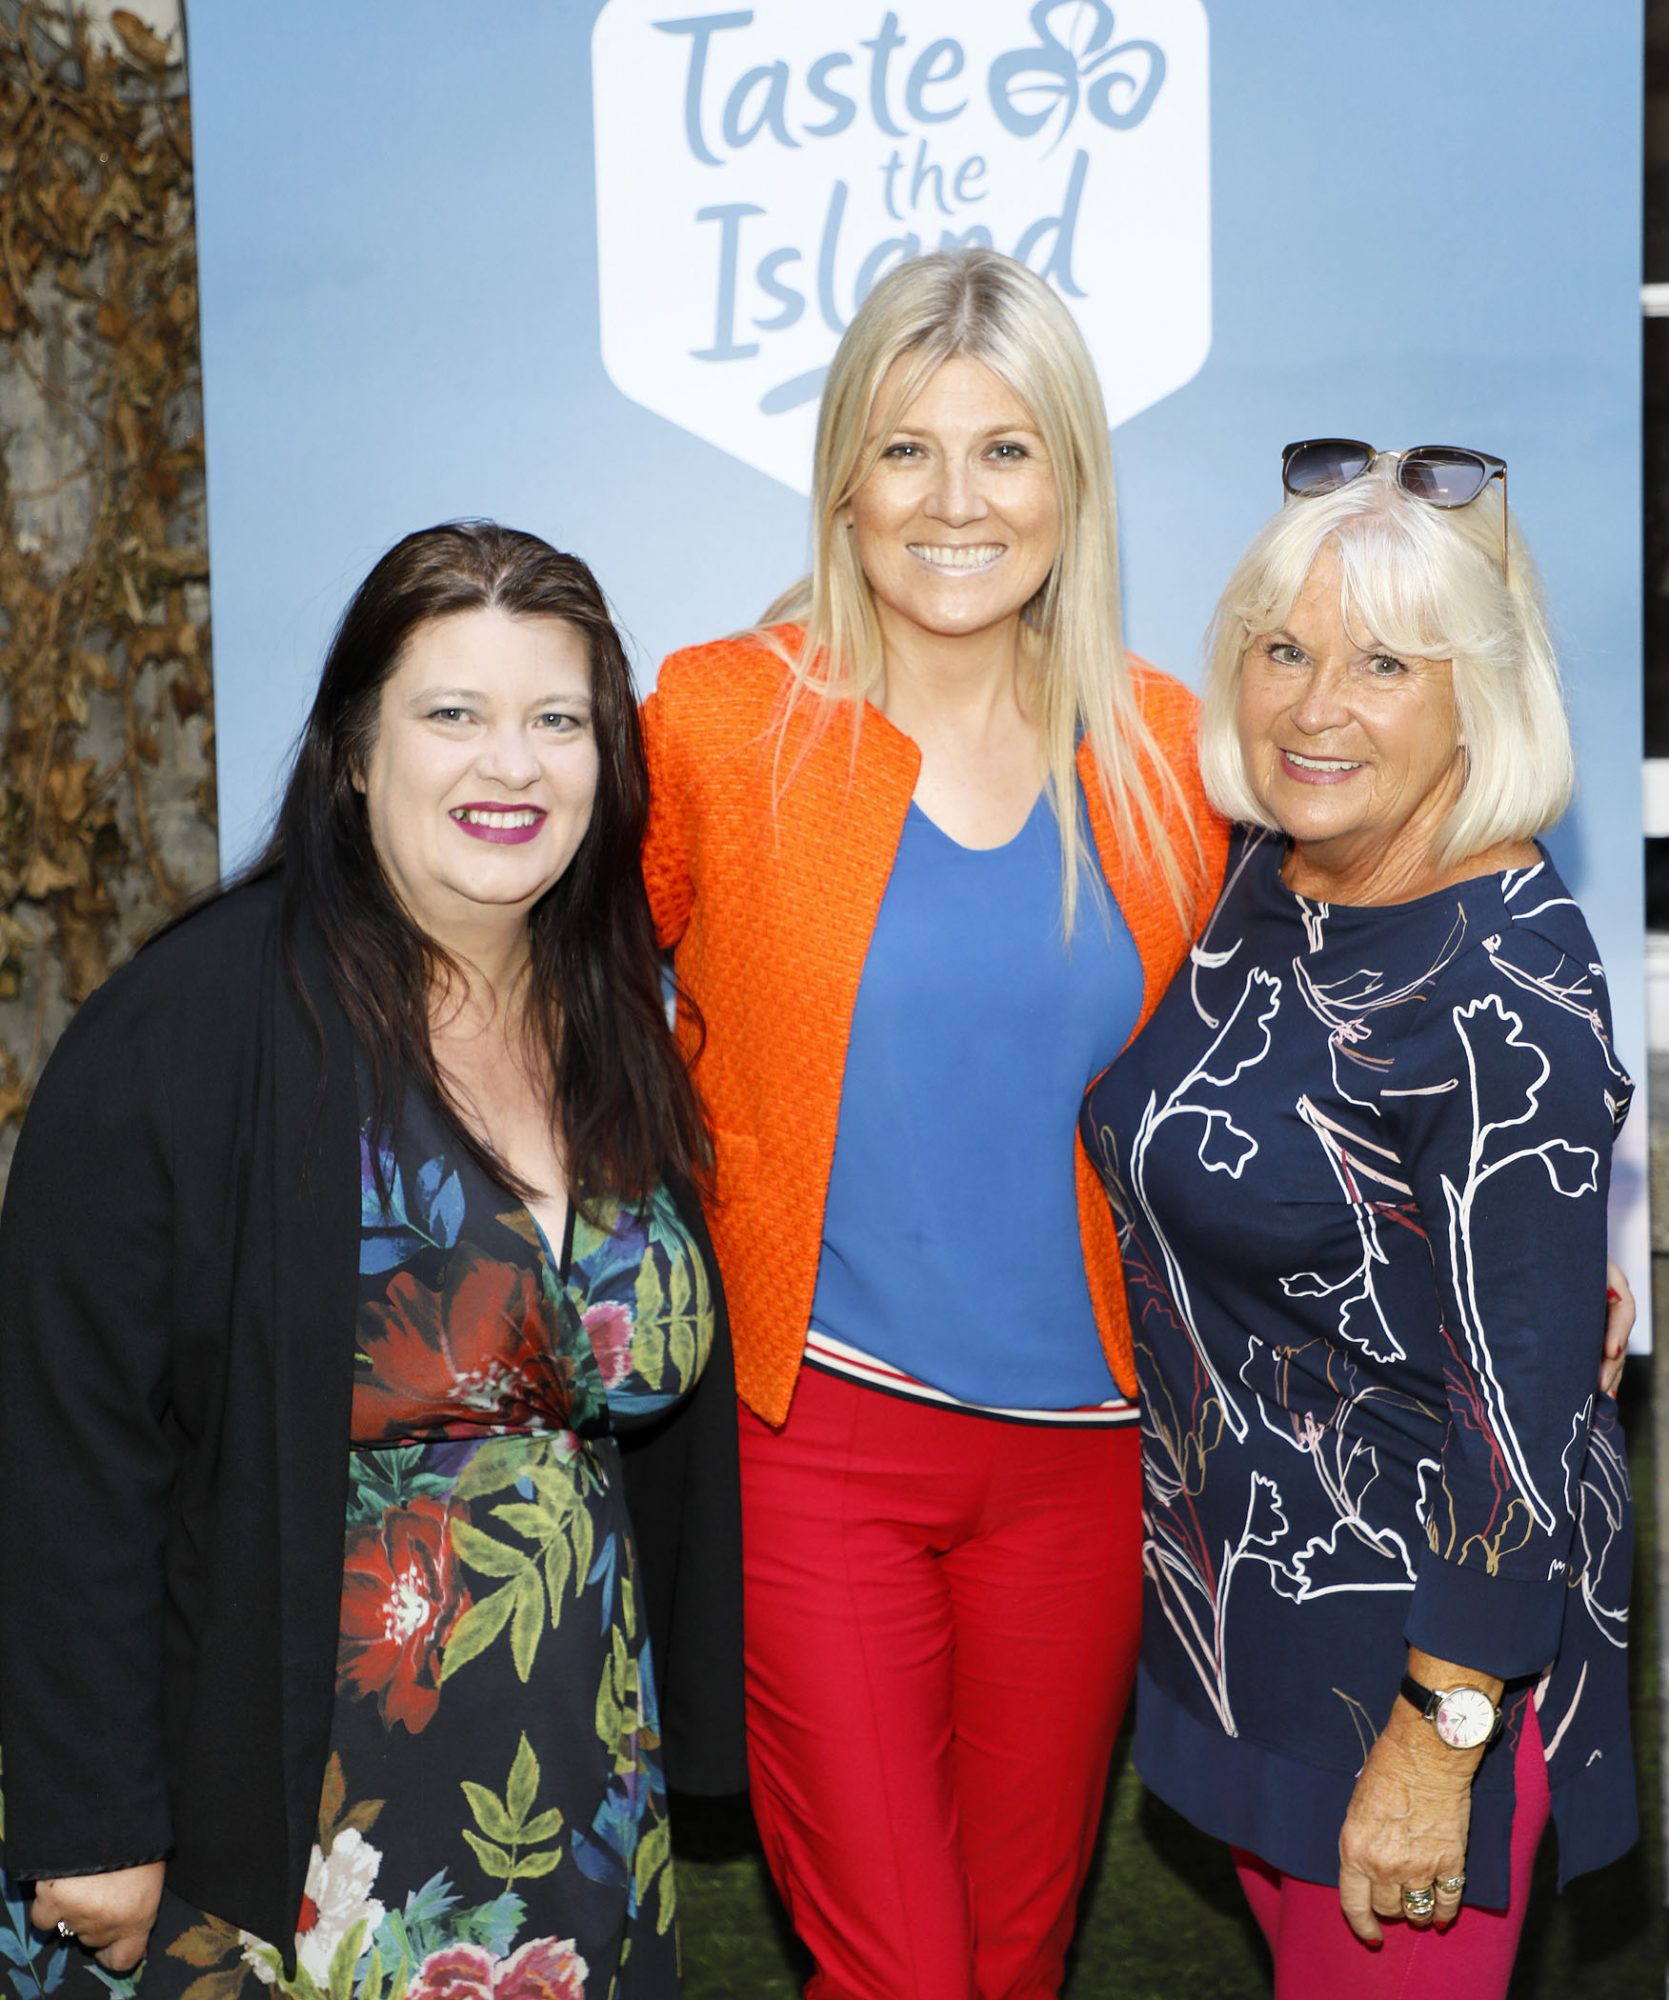 Naomi Waite, Fiona Cunningham and Jacinta McGlynn at the launch of Taste the Island, a 12 week celebration of Ireland's seasonal ingredients, adventurous tastes and bold experiences taking place this September, October and November. Photo: Kieran Harnett